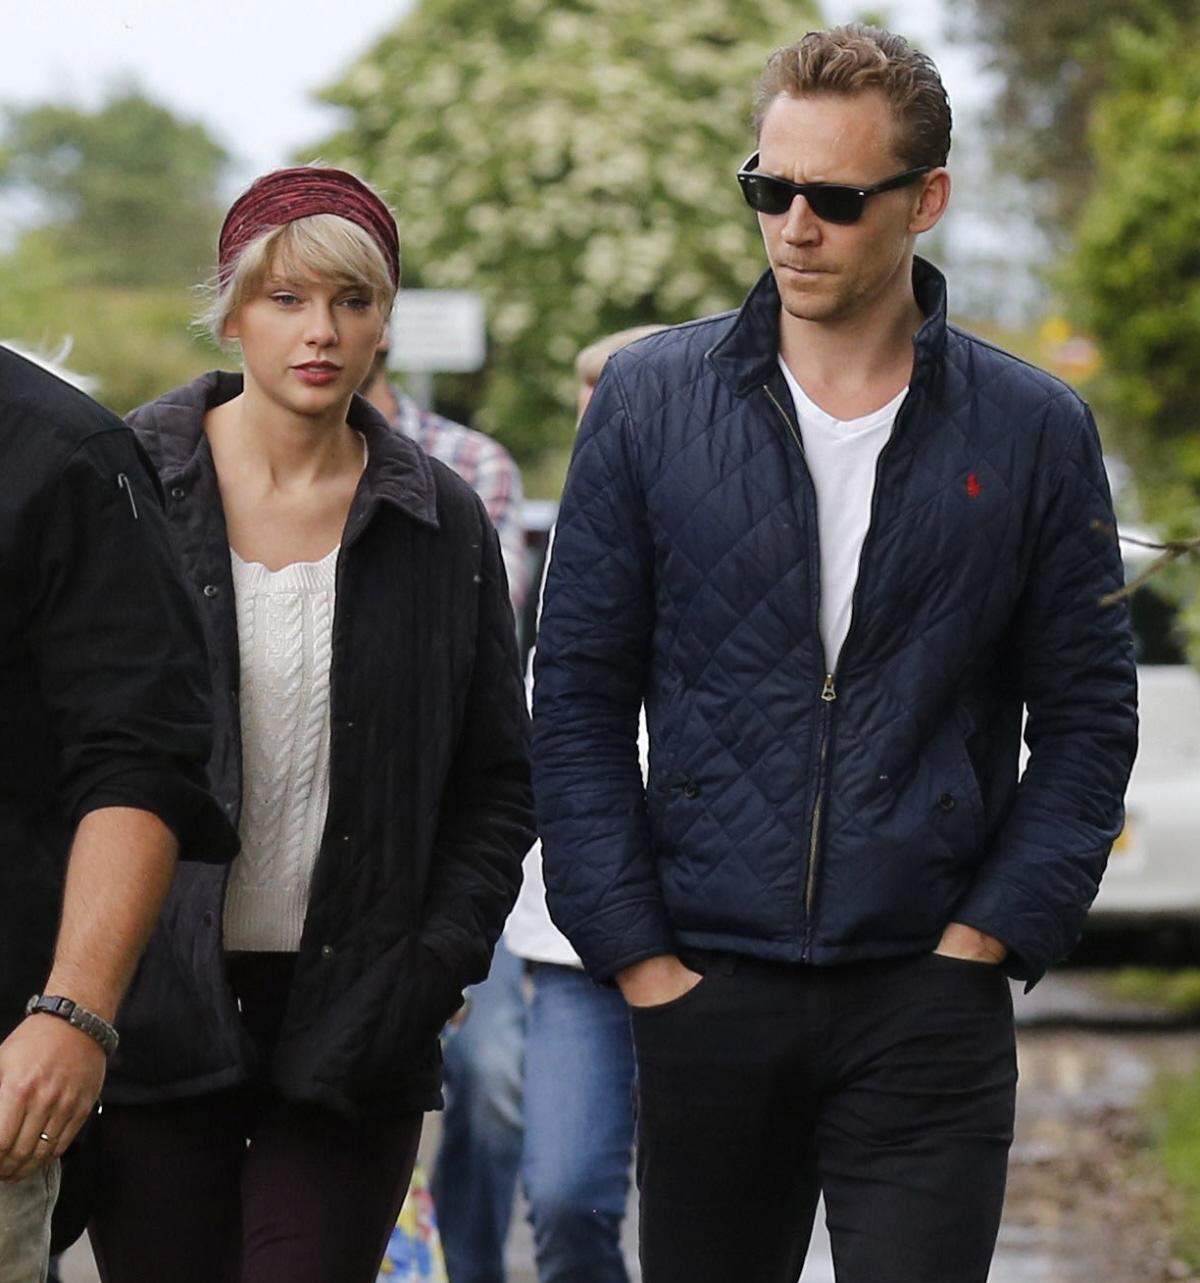 FFN_FlyUK_Hiddleston_Swift_062616_52104812